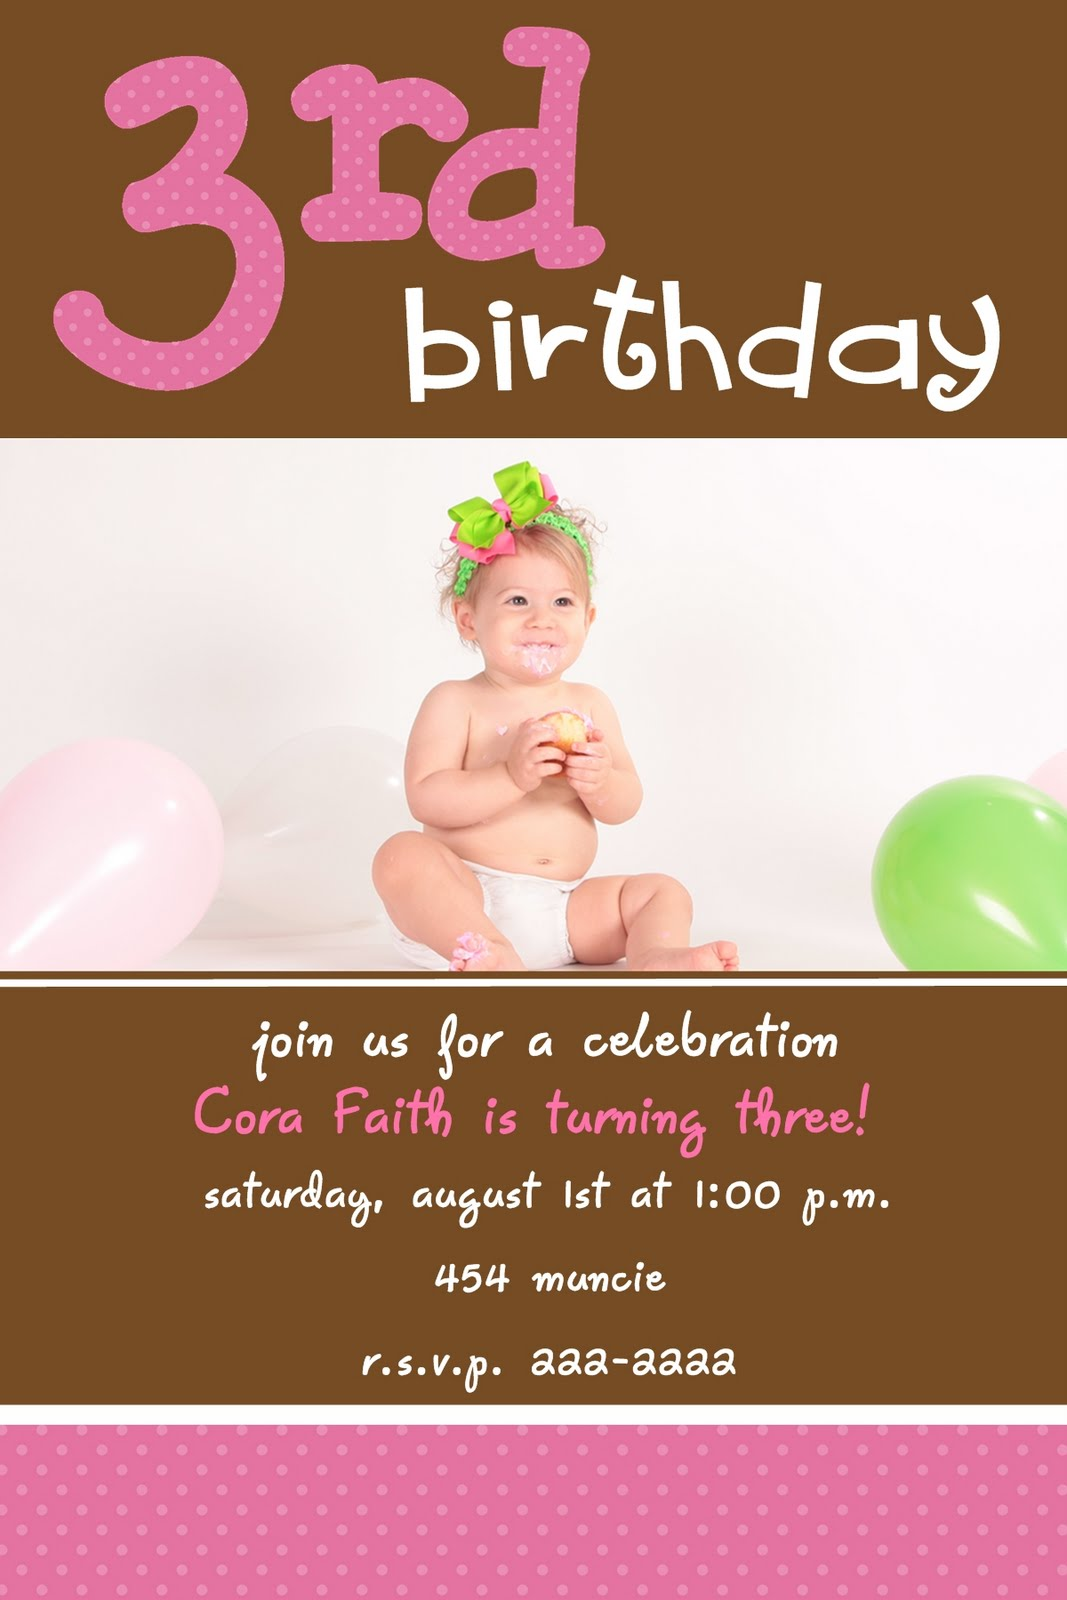 3rd birthday party invitation quotes ; 3rd_birthday_invitation_wording_template_5